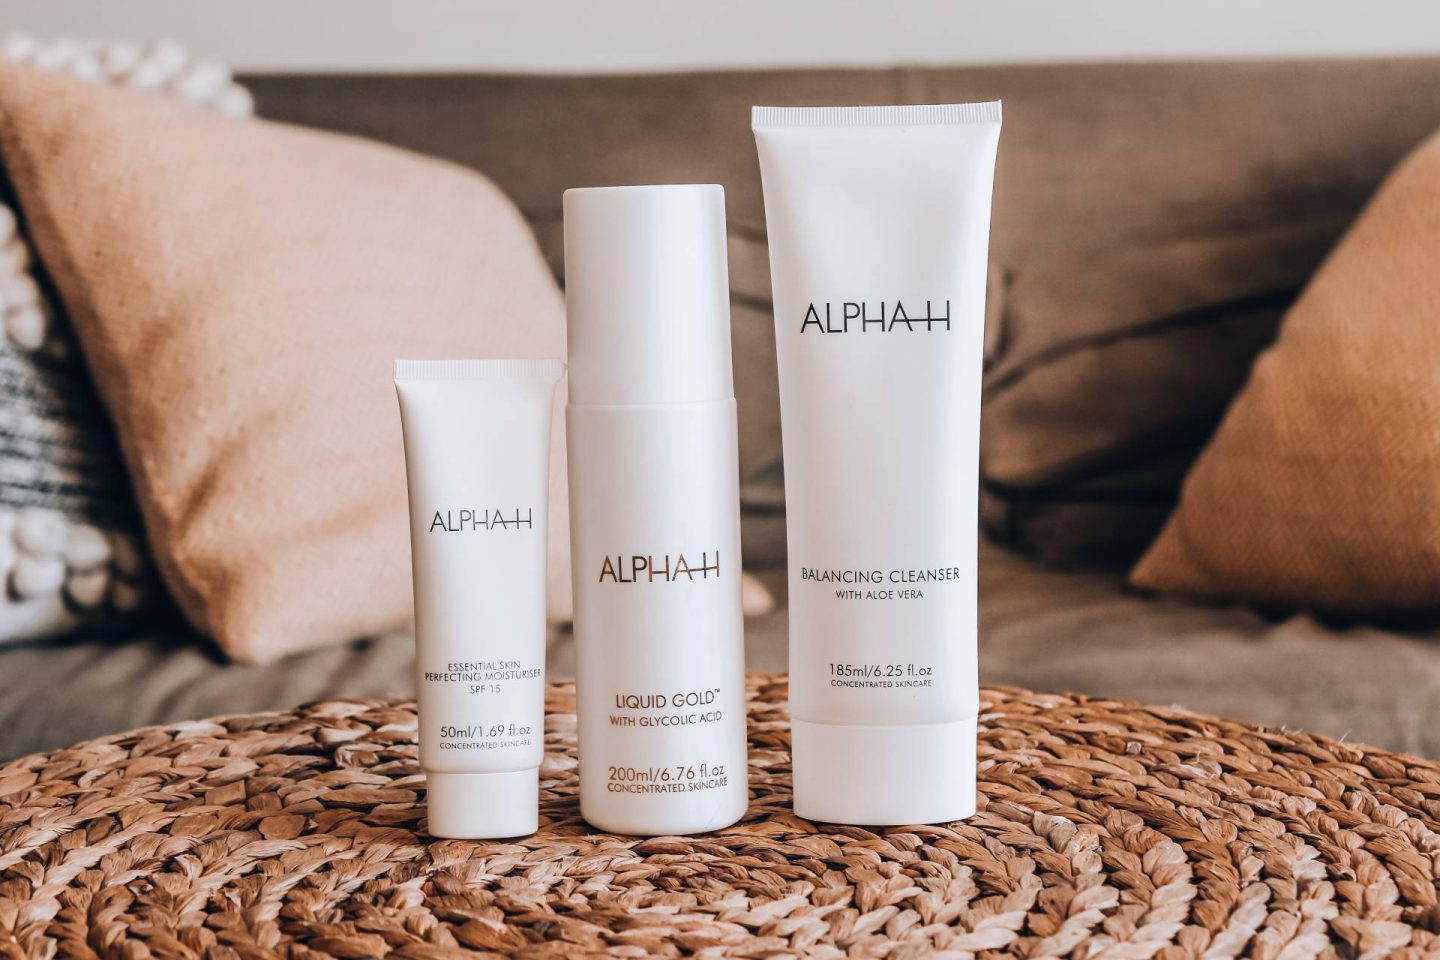 Alpha H skincare set